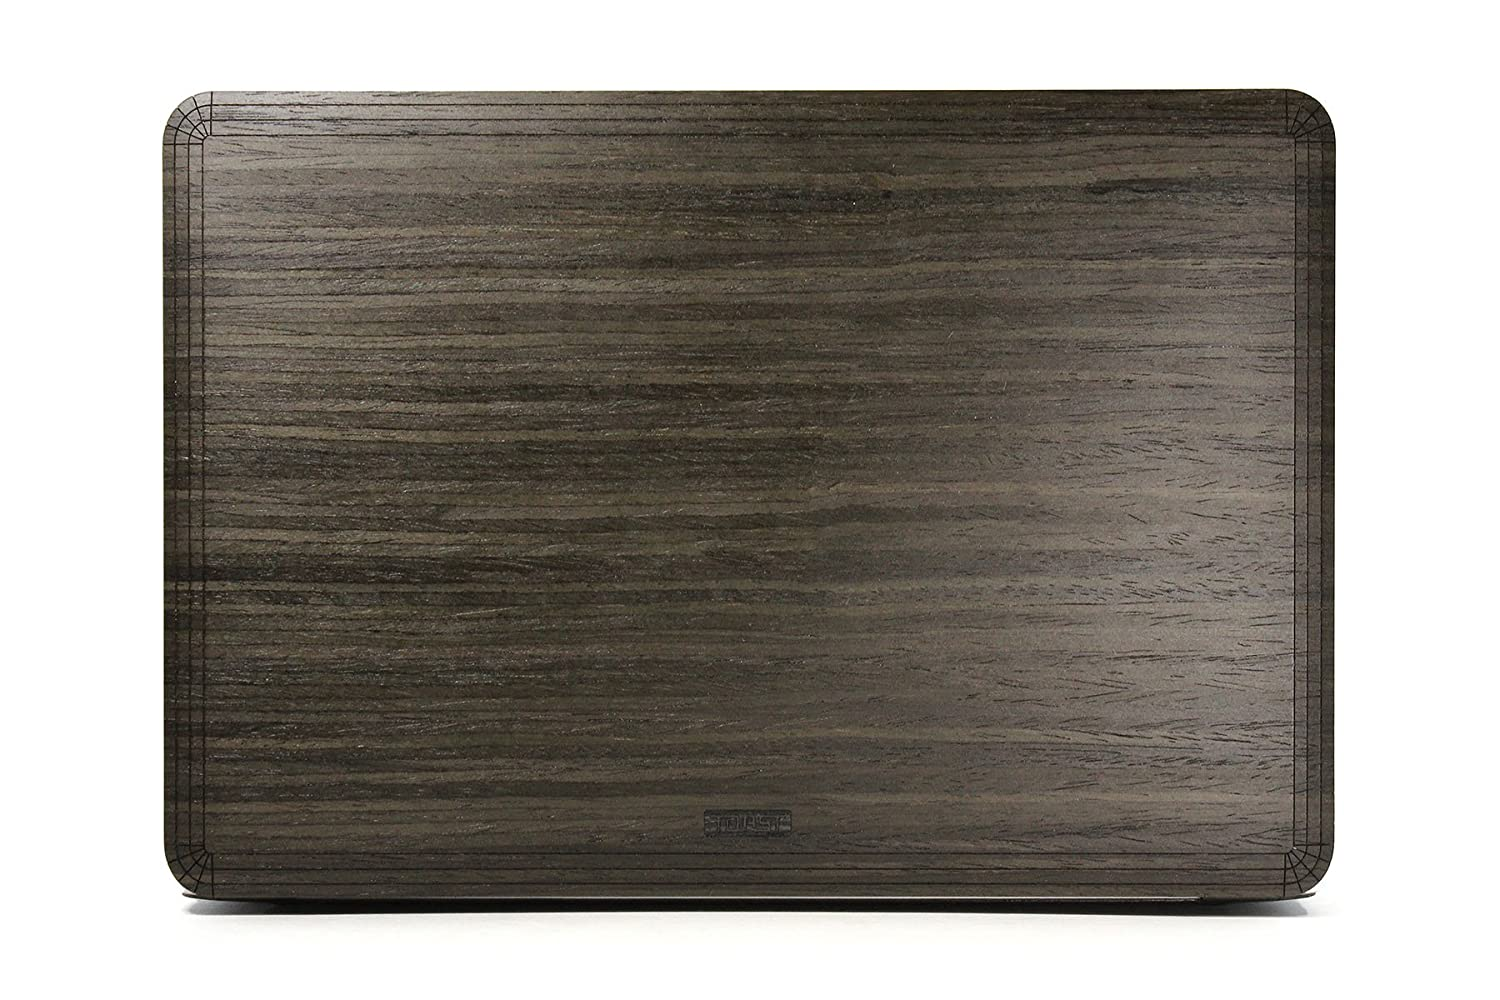 TOAST Real Wood Walnut Cover for MacBook Pro 13-Inch Retina (MBPR-13R2-PLA-01-COM)